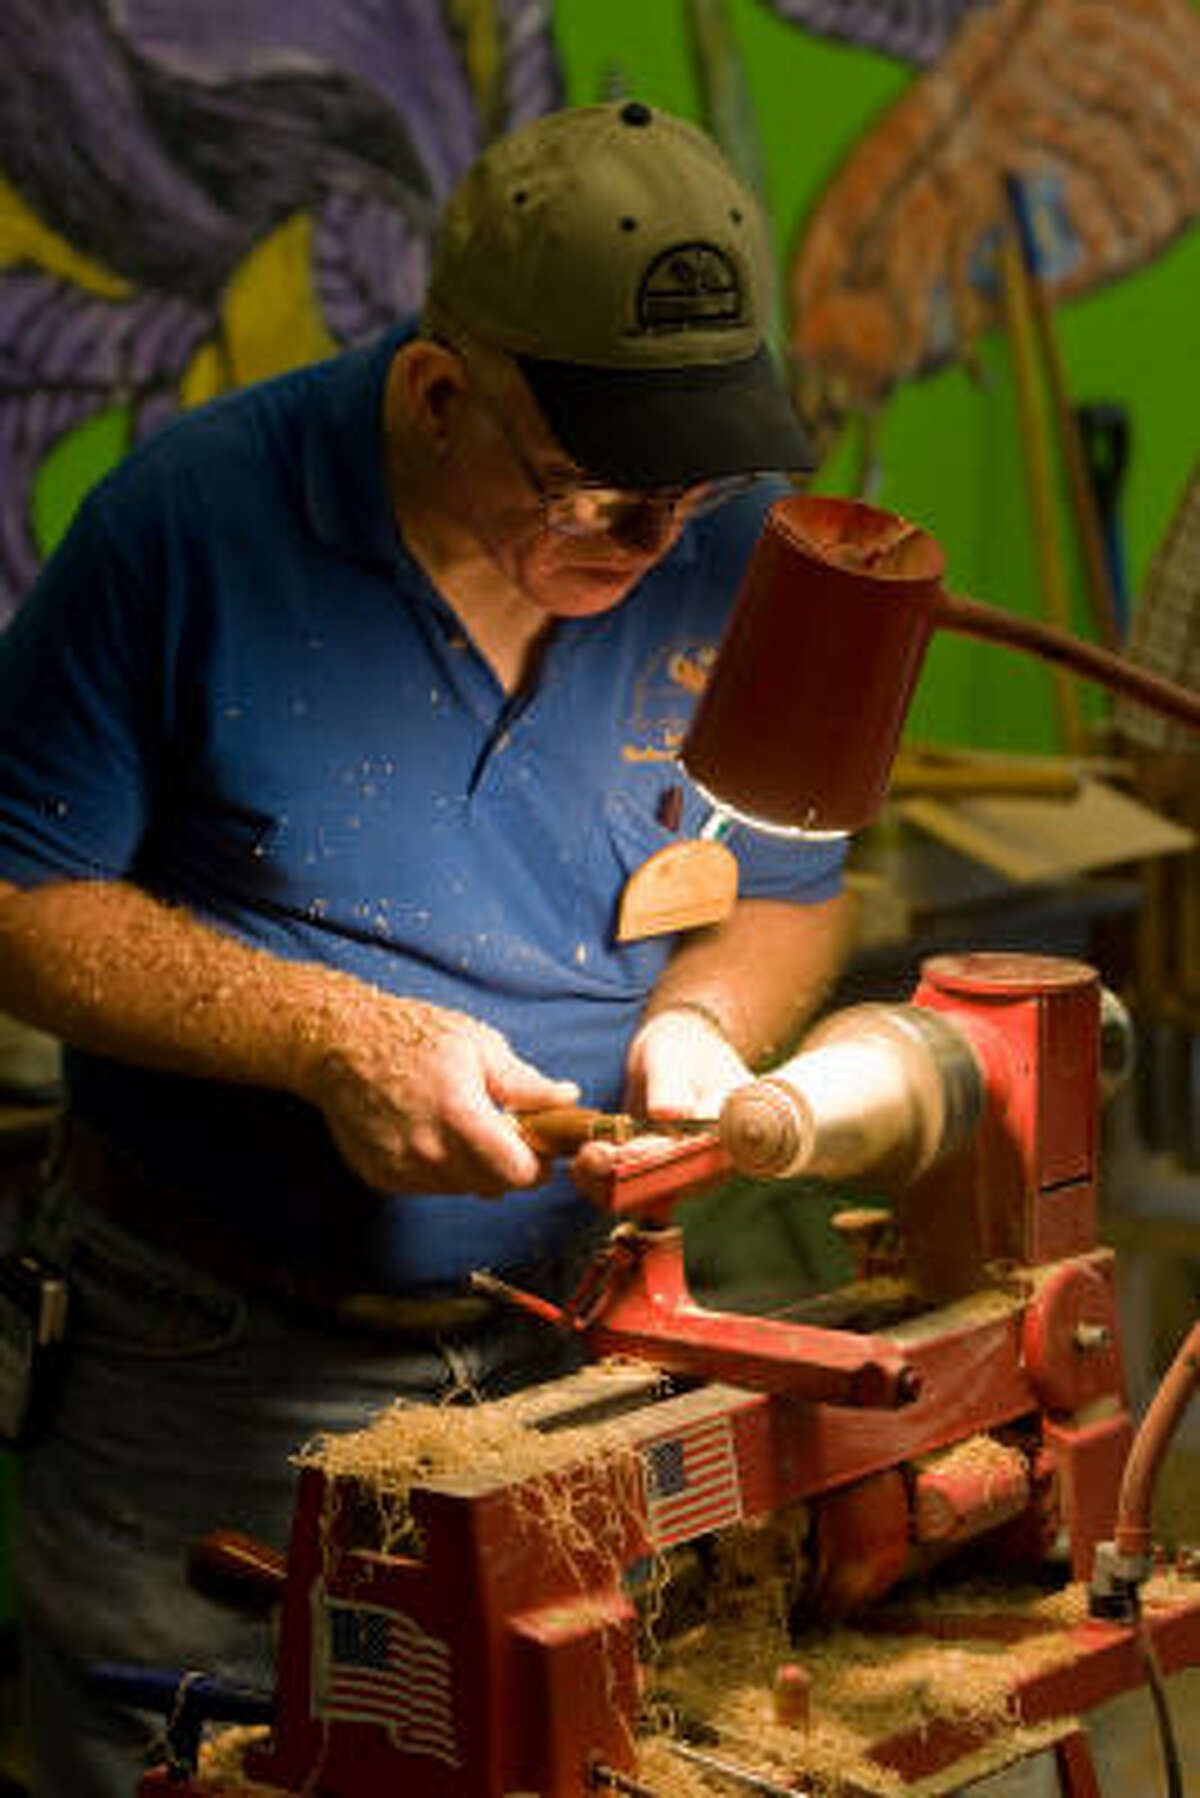 Jonathan Bartz turns a top on a lathe.